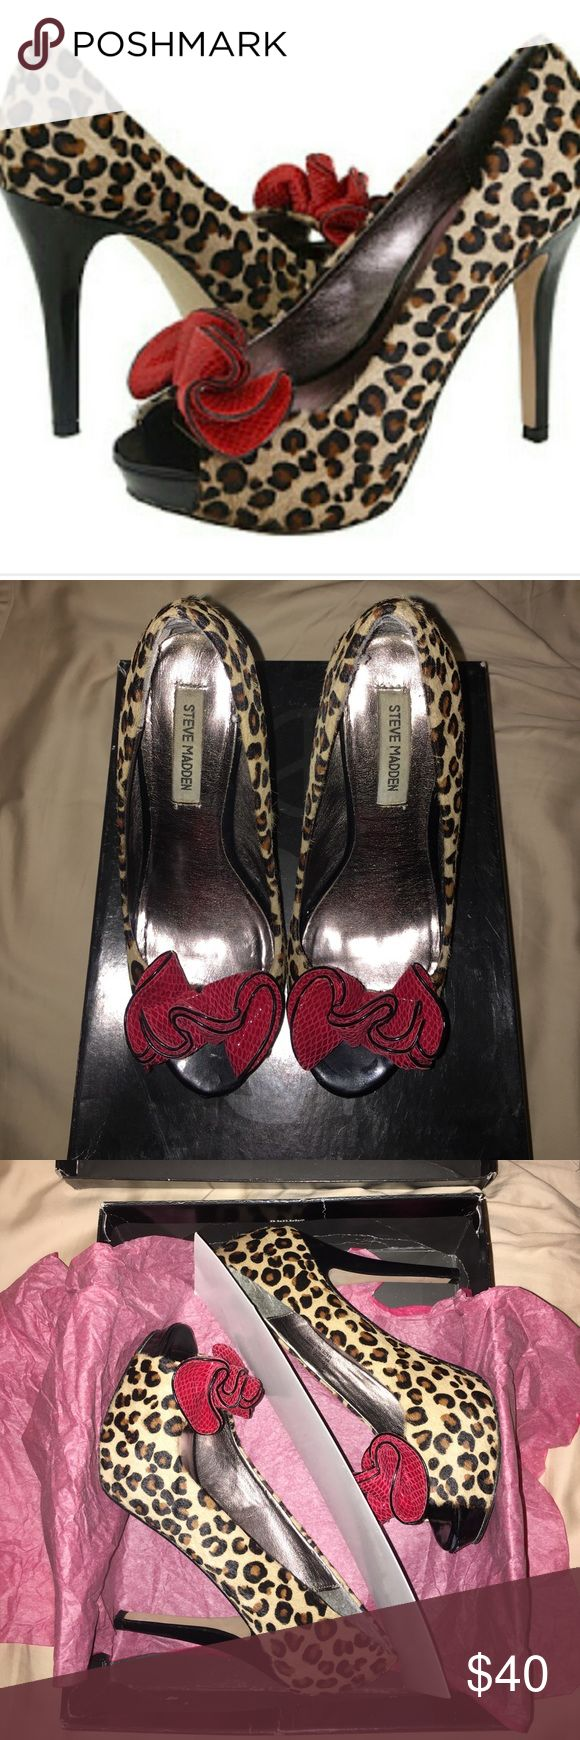 Steve Madden Regaal Leopard Peep toe Vegan calf hair with leopard print. Scuff on heel. Some light marks on the heels. Comes with box. Worn twice. Great Condition. Perfect for a sultry pin up look! Steve Madden Shoes Heels